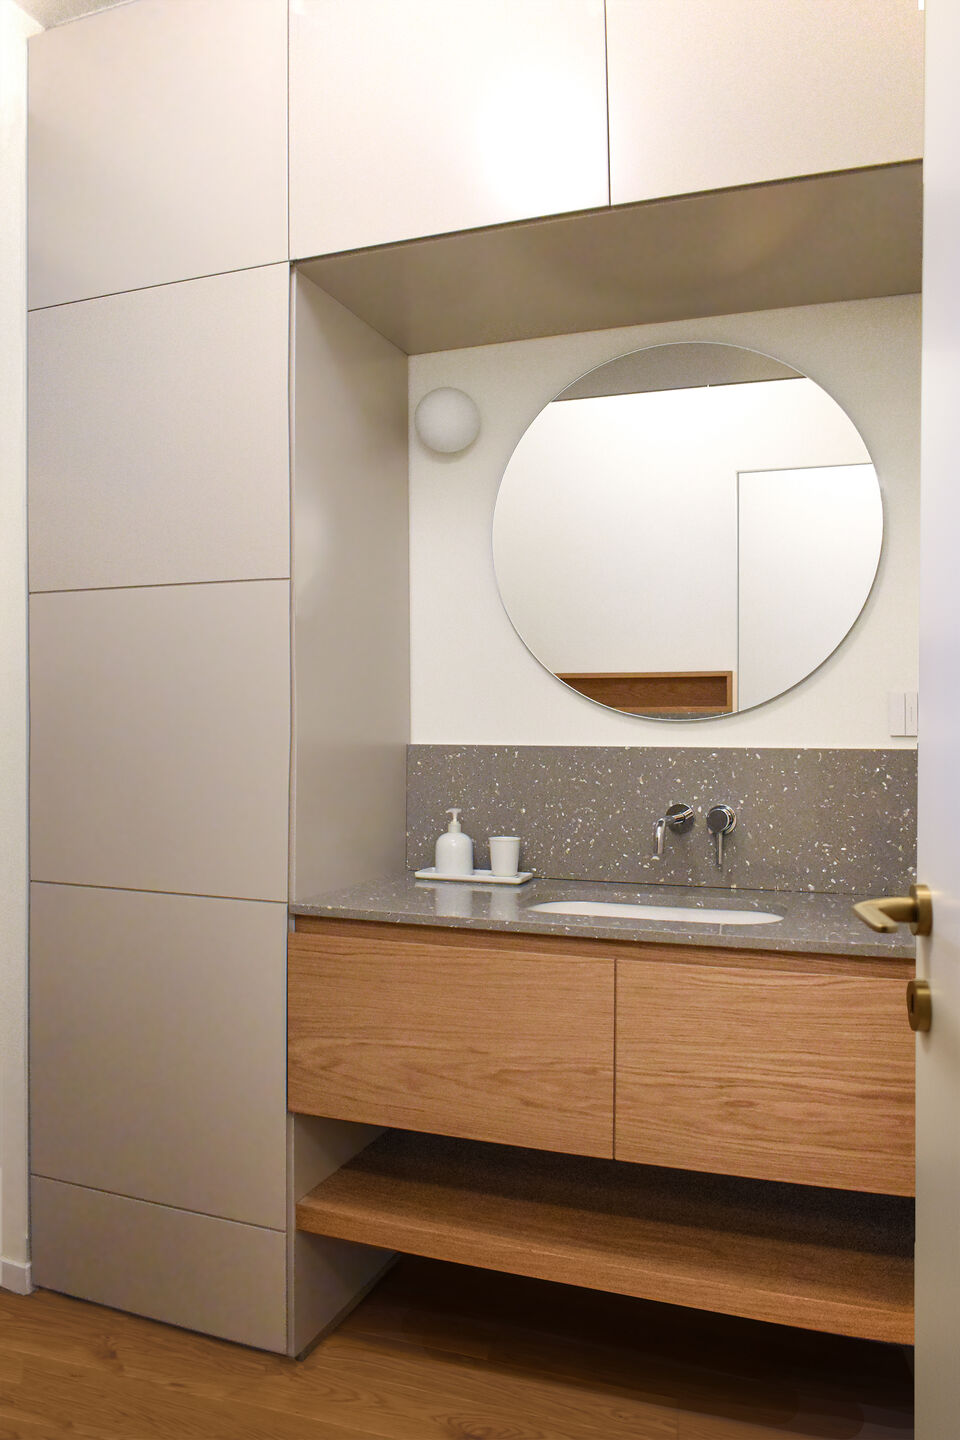 a guest bathroom with storage functions. The renovation took advantage of the maximum available space thanks to the bespoke furniture